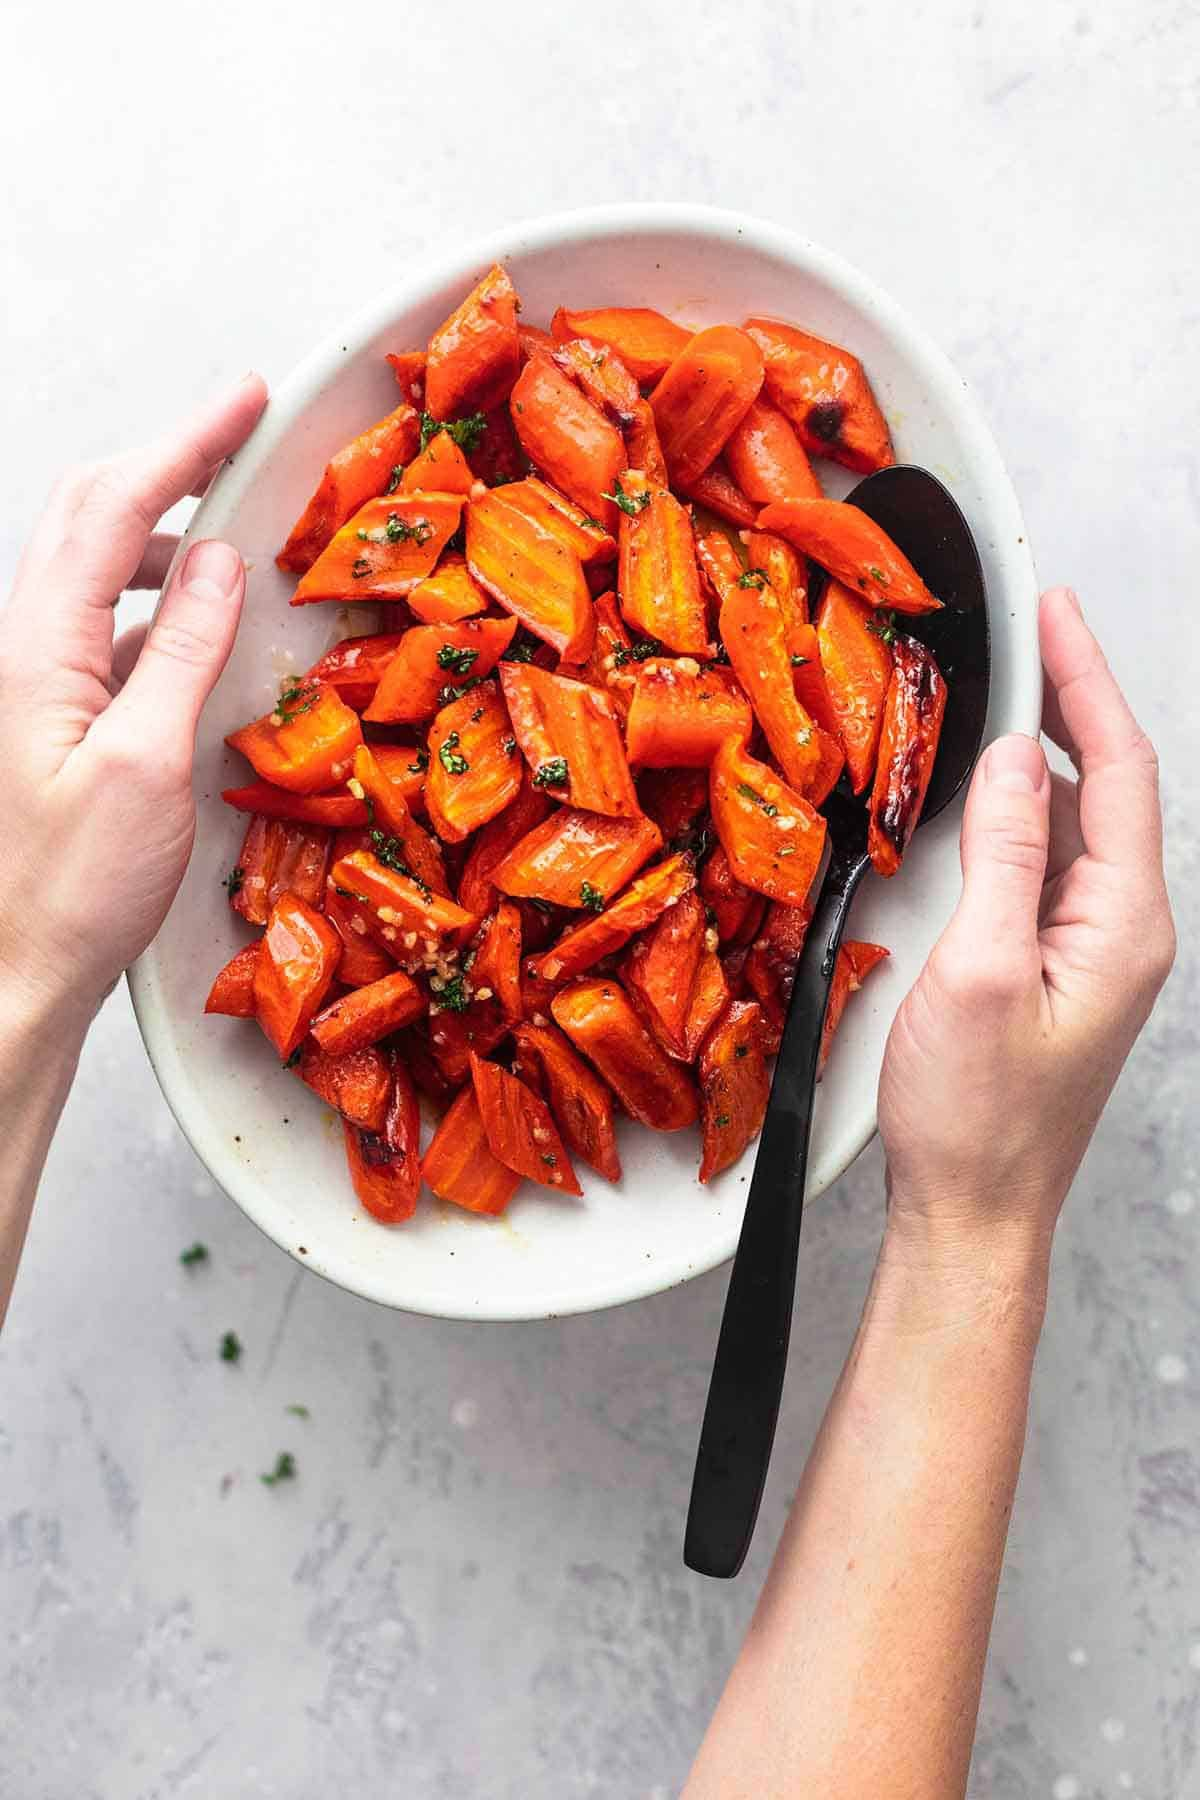 hands holding a platter of roasted carrots